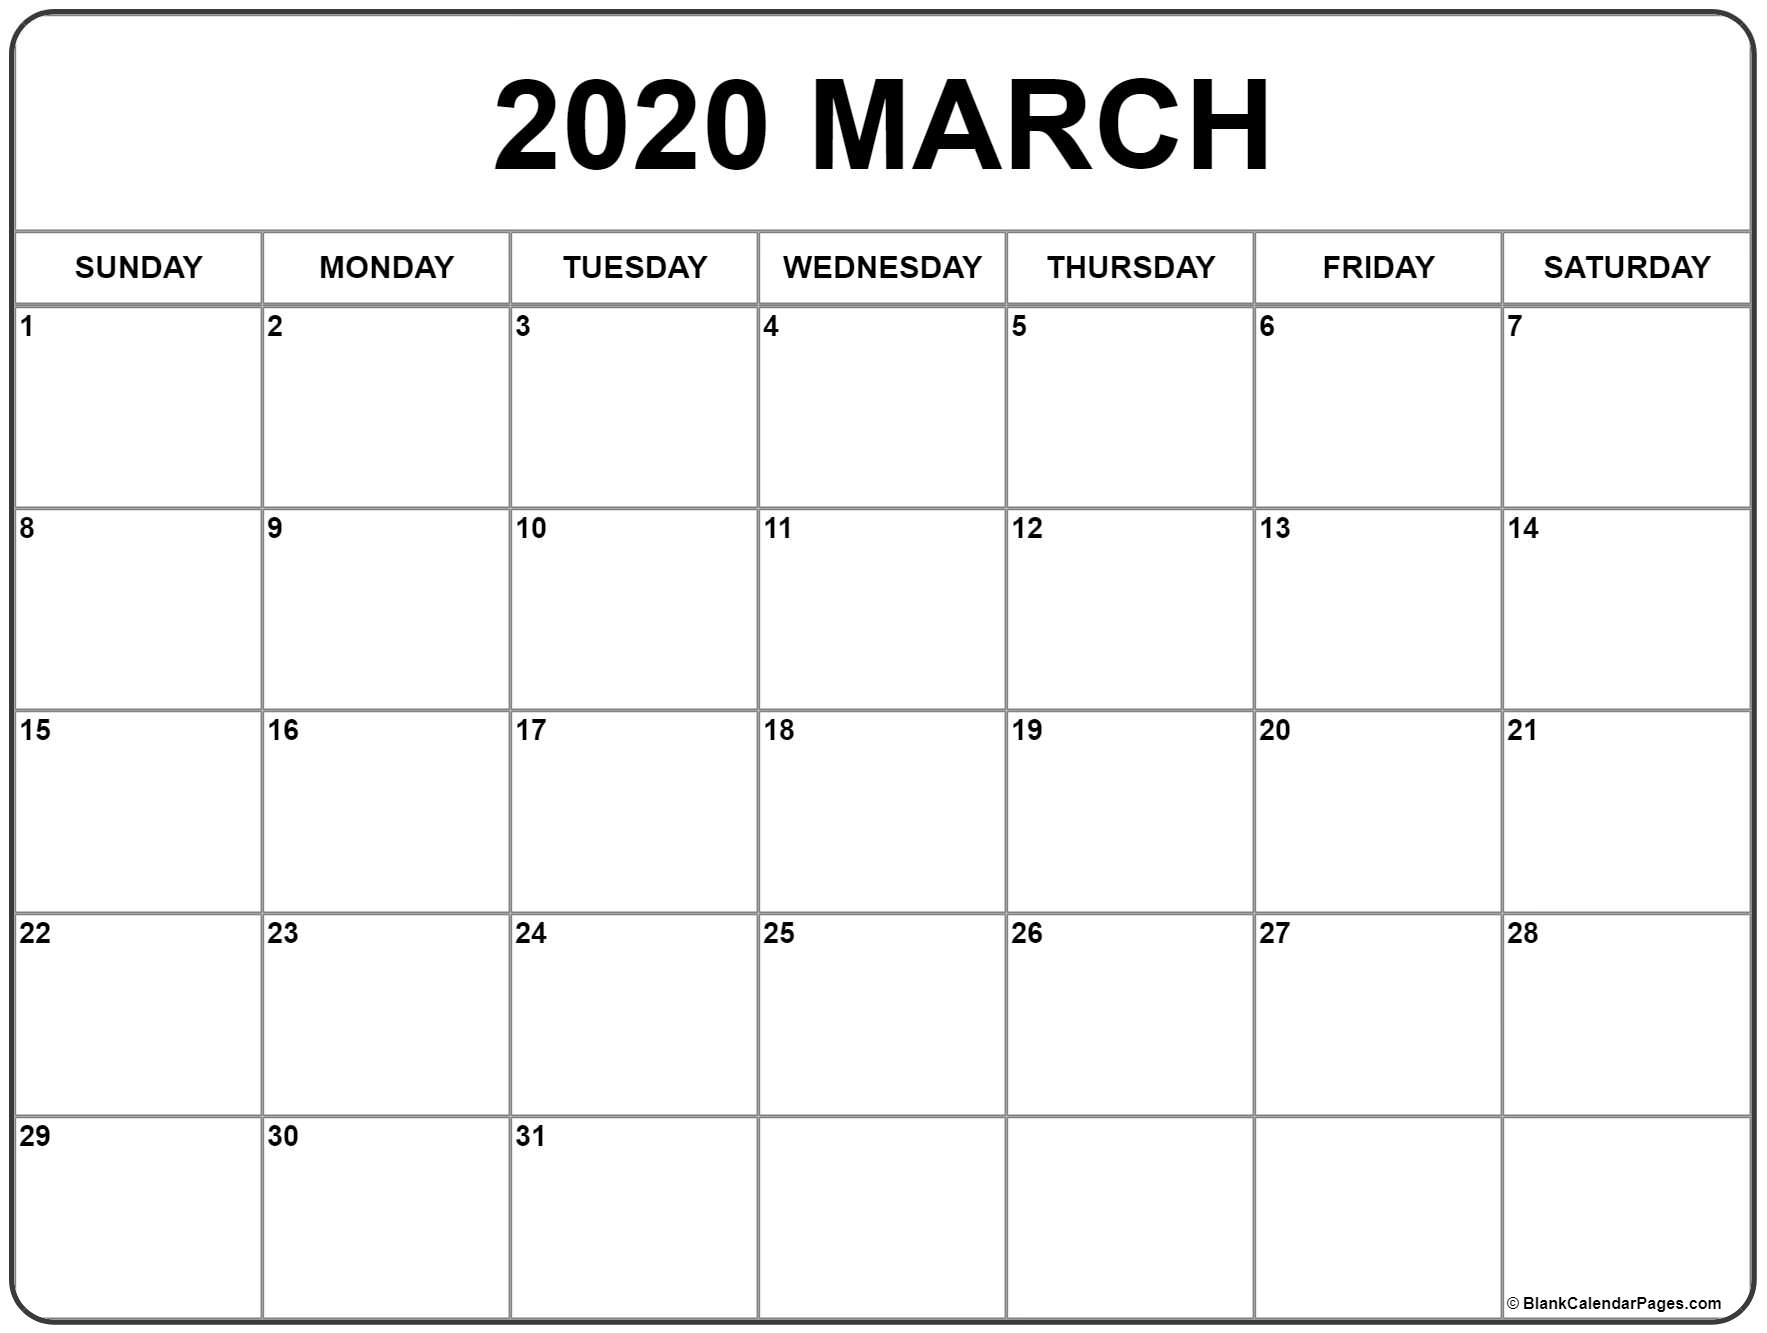 March 2020 Calendar   Free Printable Monthly Calendars